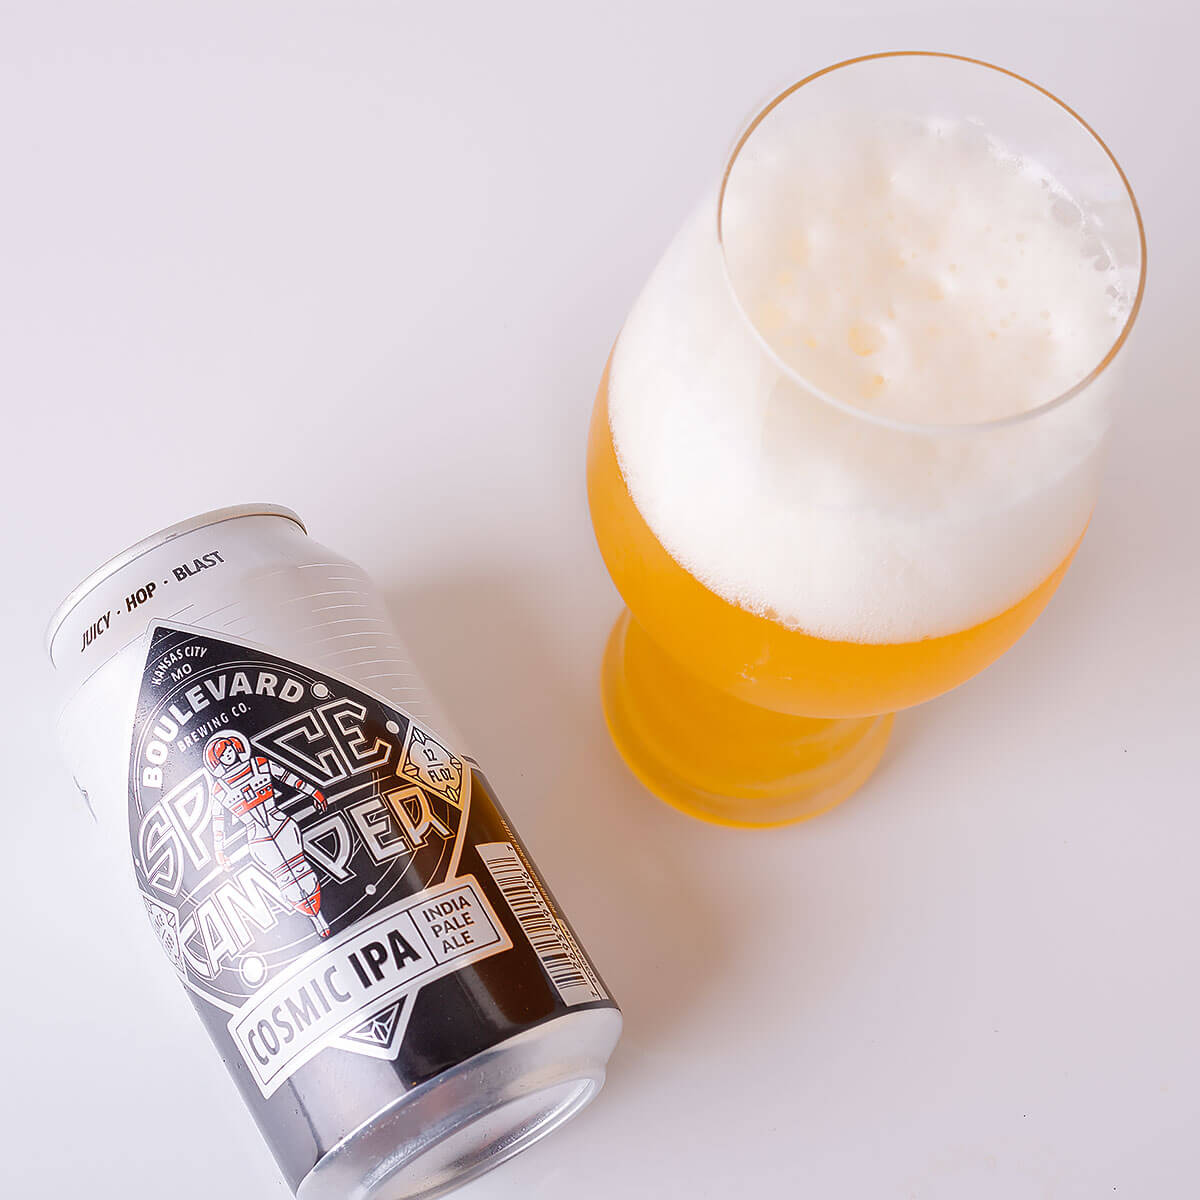 Space Camper Cosmic IPA is an American IPA by Boulevard Brewing Co. that's light and crisp with juicy citrus and stone fruit flavor.